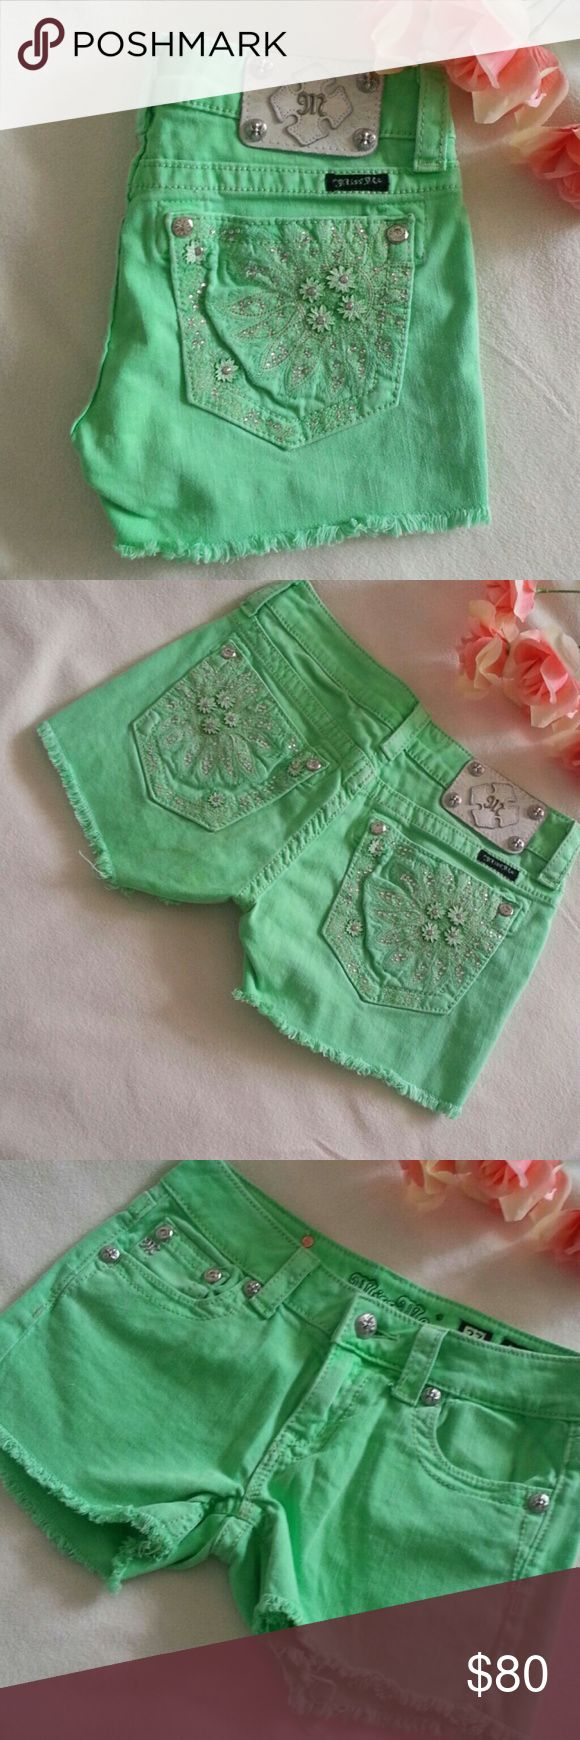 "FINAL SALE Miss Me Neon Green Shorts 27 PRICE IS FIRM X NO OFFER  Excellent condition,  Neon Green Miss Me Shorts Size 27, waist  28"" Hips 35"" Inseam 2.5"" Miss Me Shorts Jean Shorts"